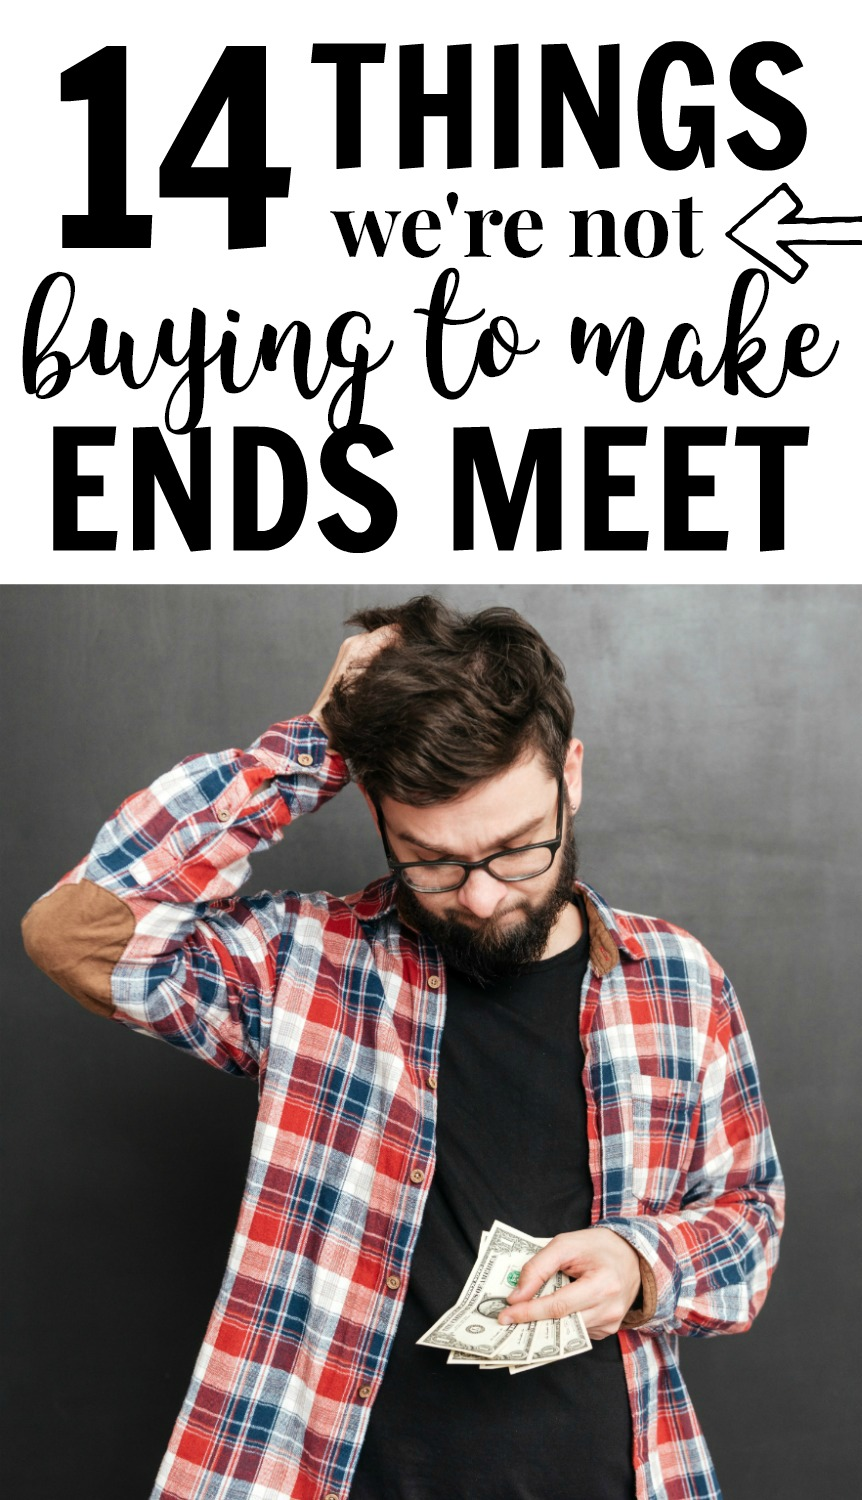 save money | save money tips | save money ideas | frugal living | make ends meet #savemoney #frugalliving